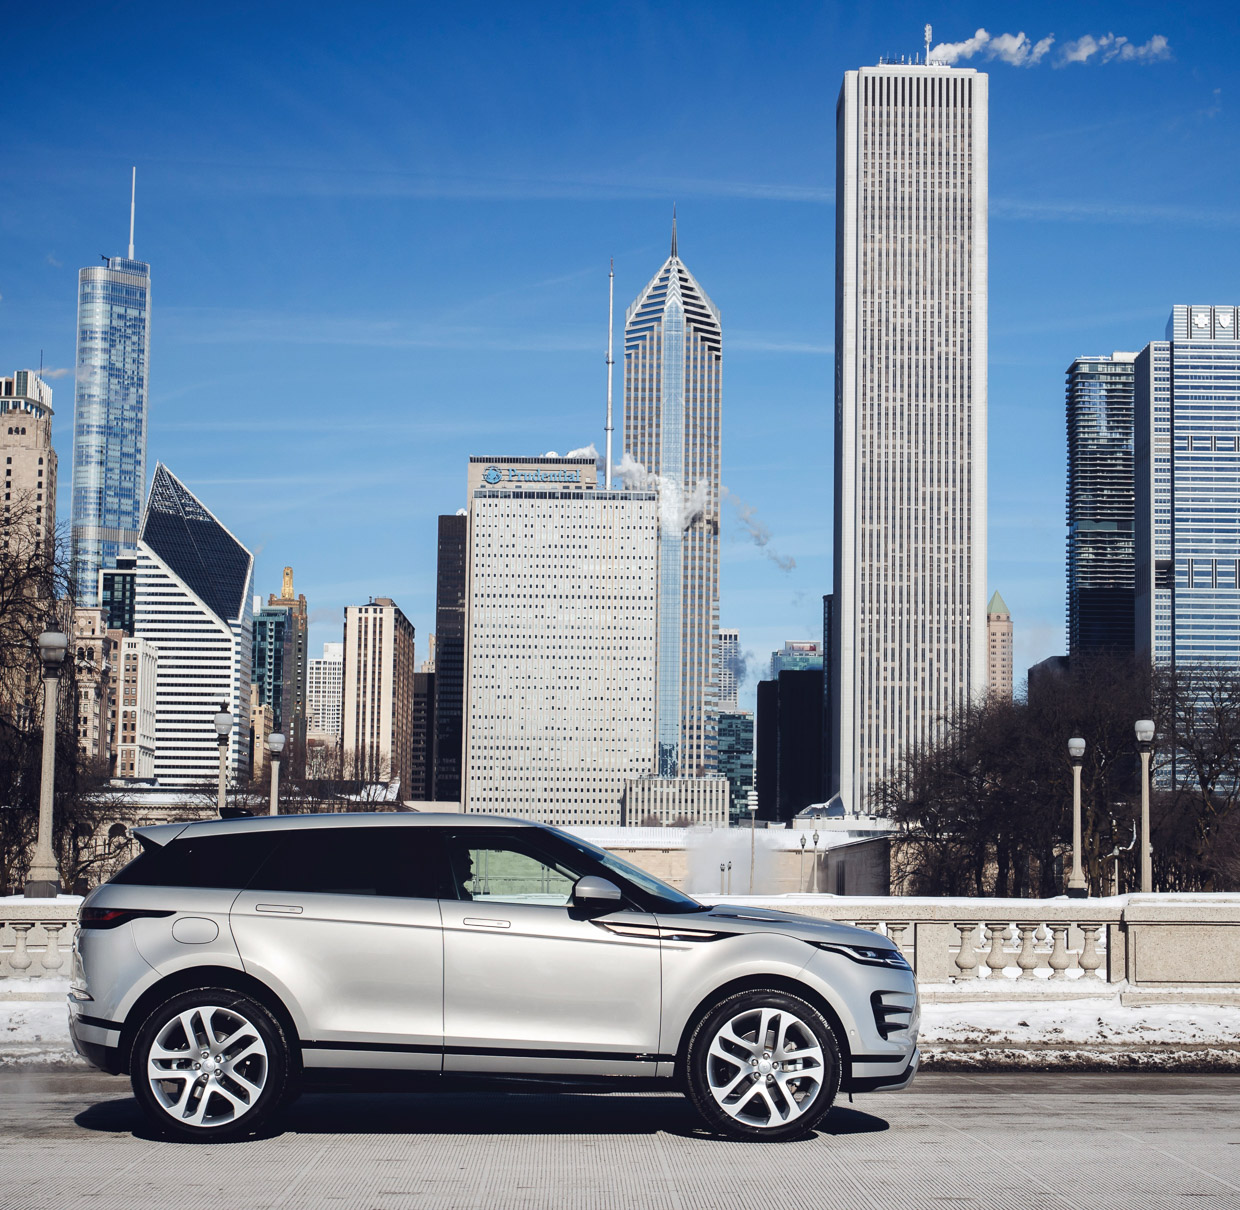 2020 Range Rover Evoque U.S. Prices And Specs Announced